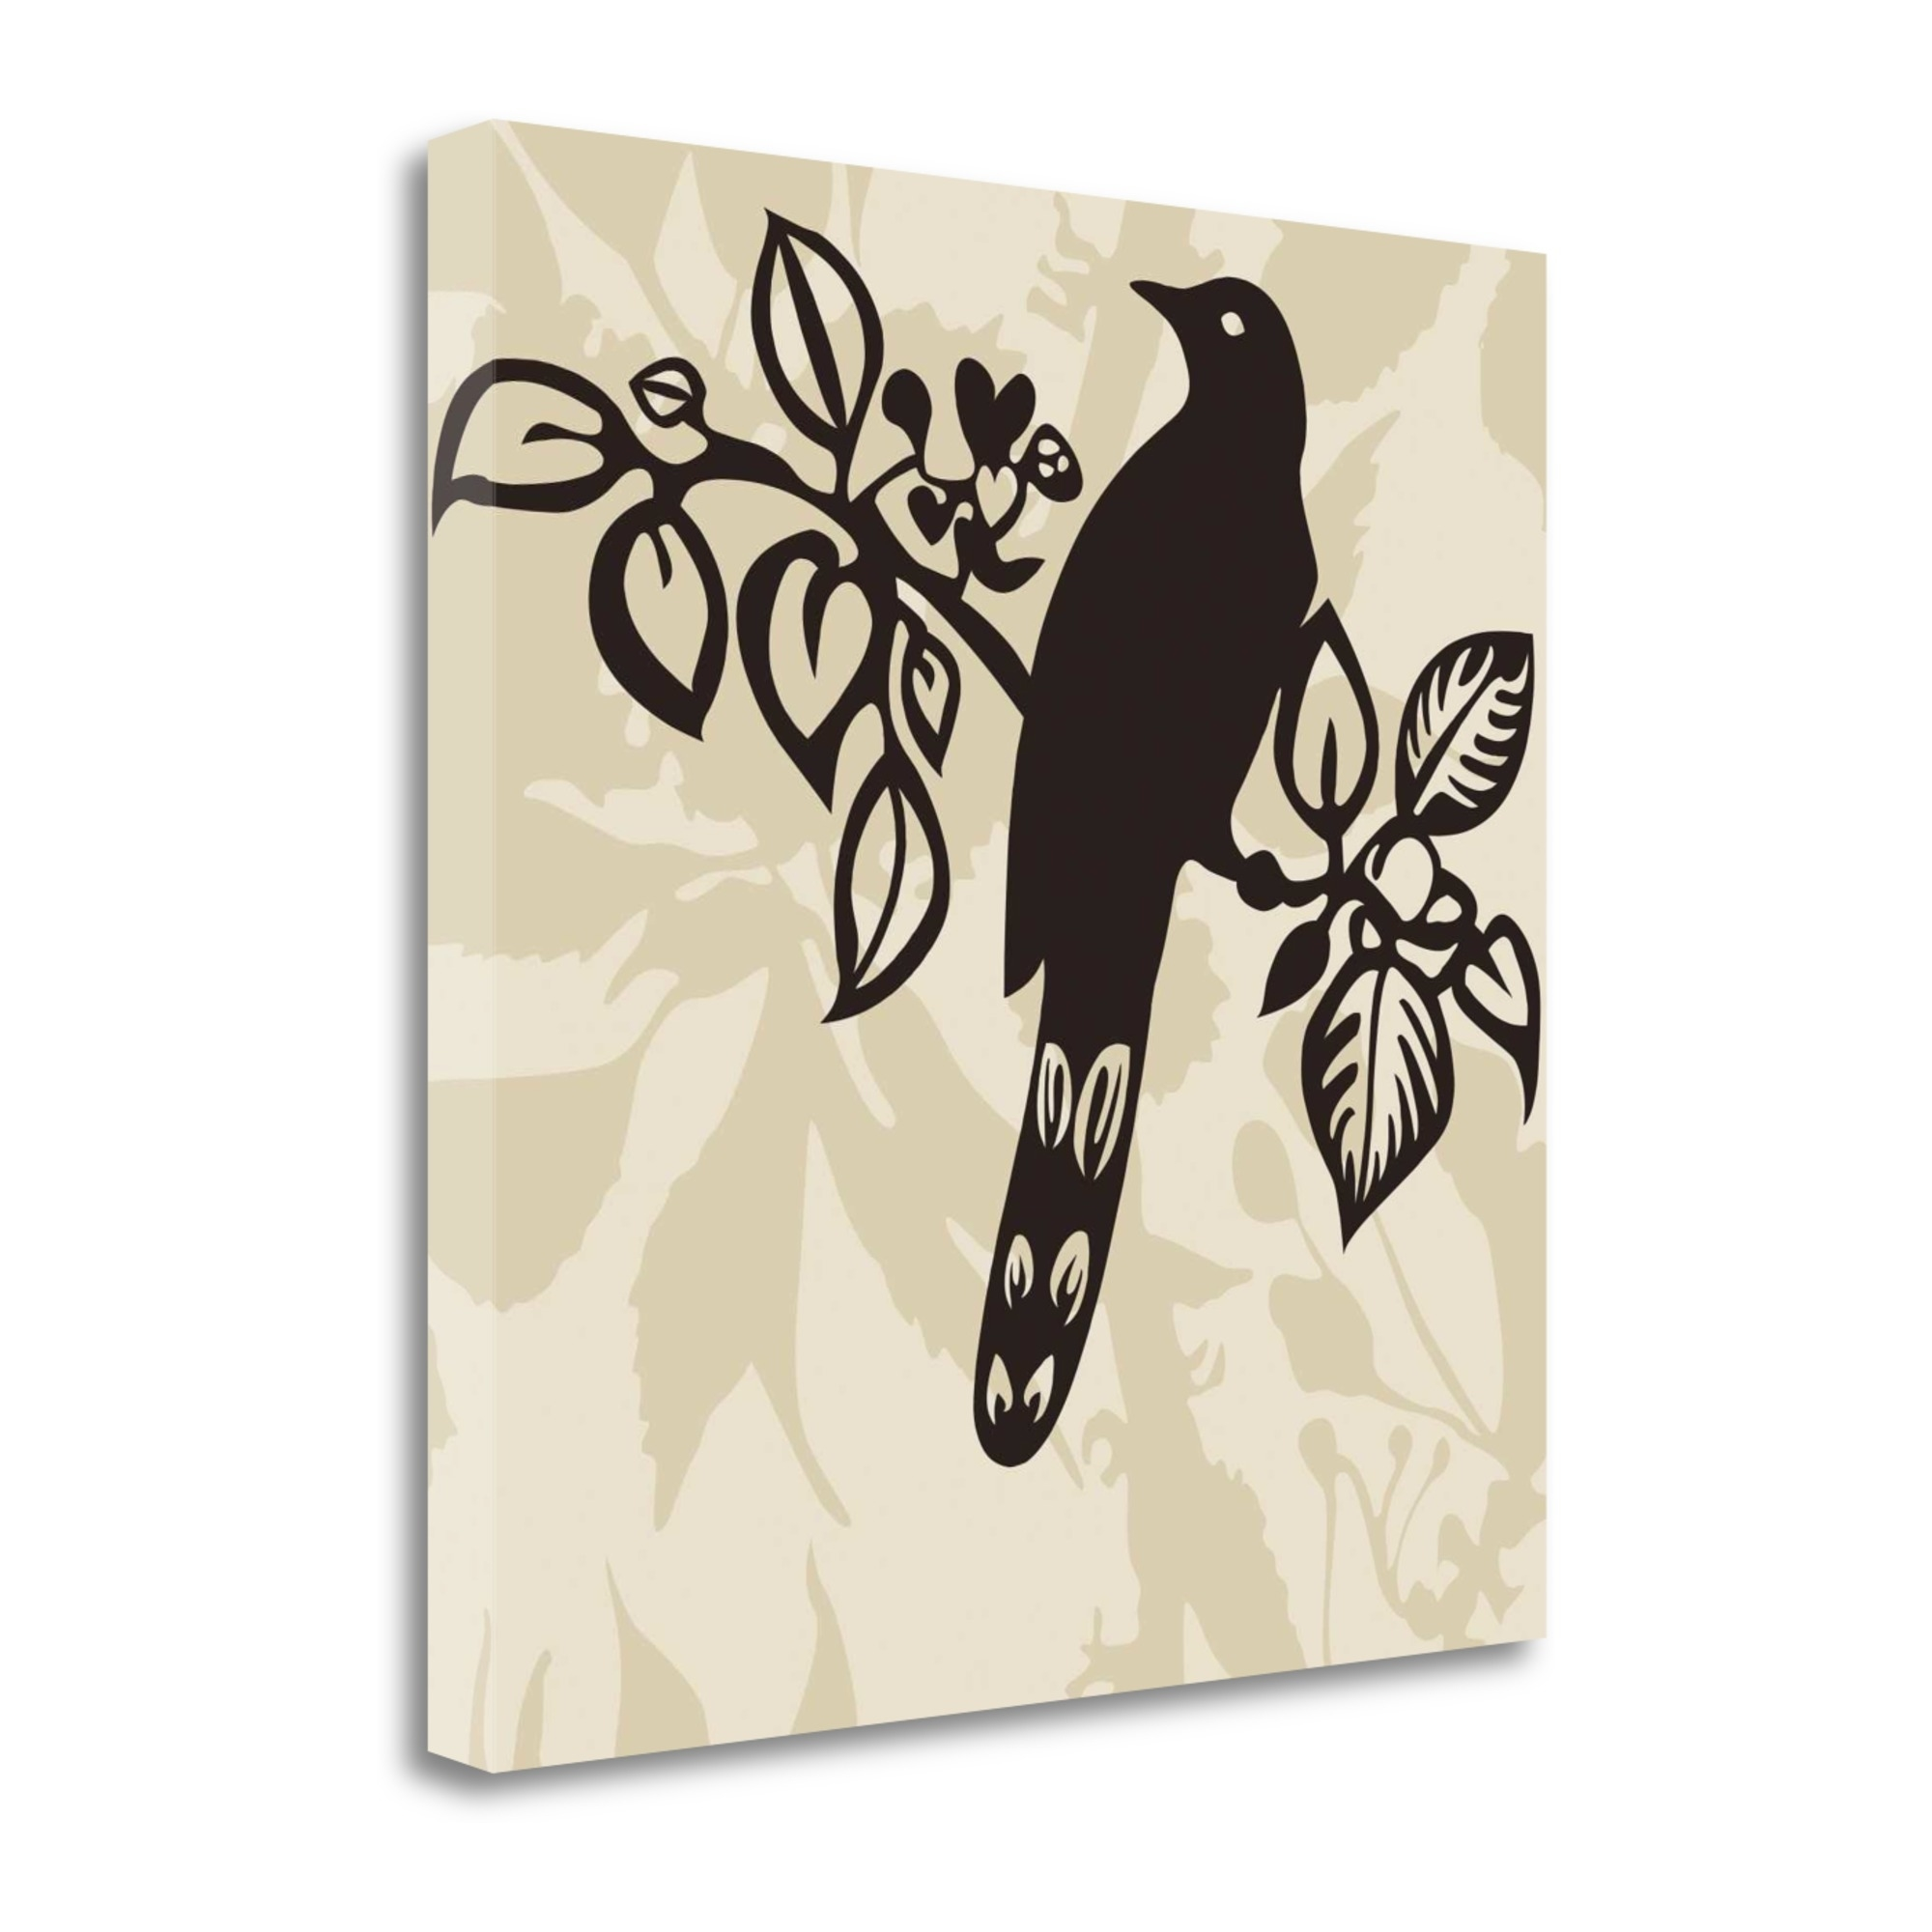 "Song Bird 1 By Jette Svane, 26"" x 26\"" Fine Art Giclee Print on Gallery Wrap Canvas, Ready to Hang"